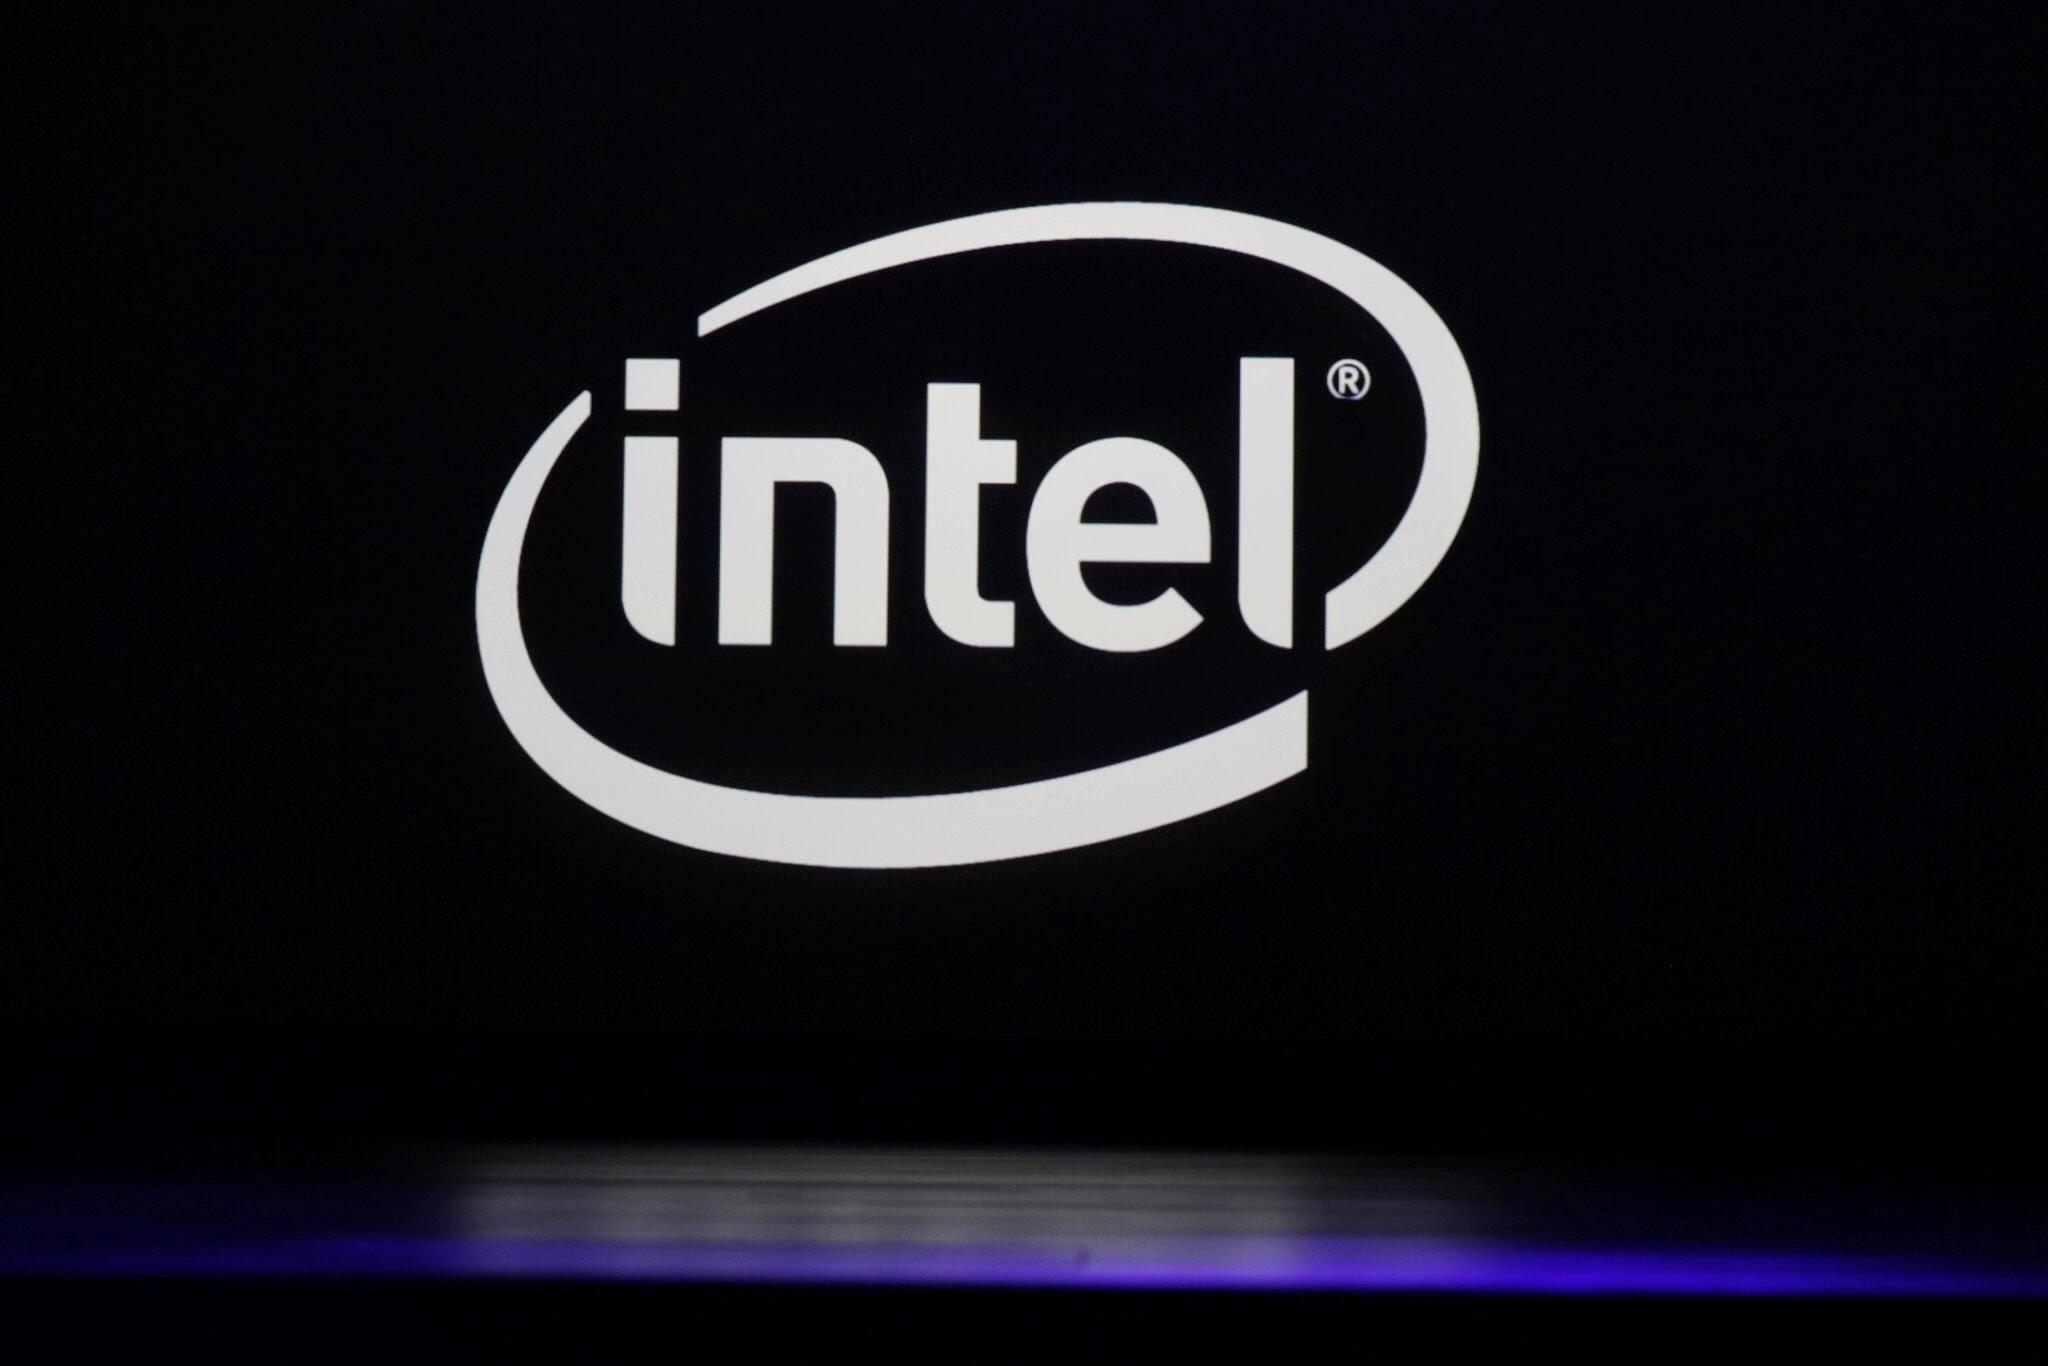 , Intel wants to produce chips for cars amid semiconductor shortage – Source CNET Computer News, iBSC Technologies - learning management services, LMS, Wordpress, CMS, Moodle, IT, Email, Web Hosting, Cloud Server,Cloud Computing